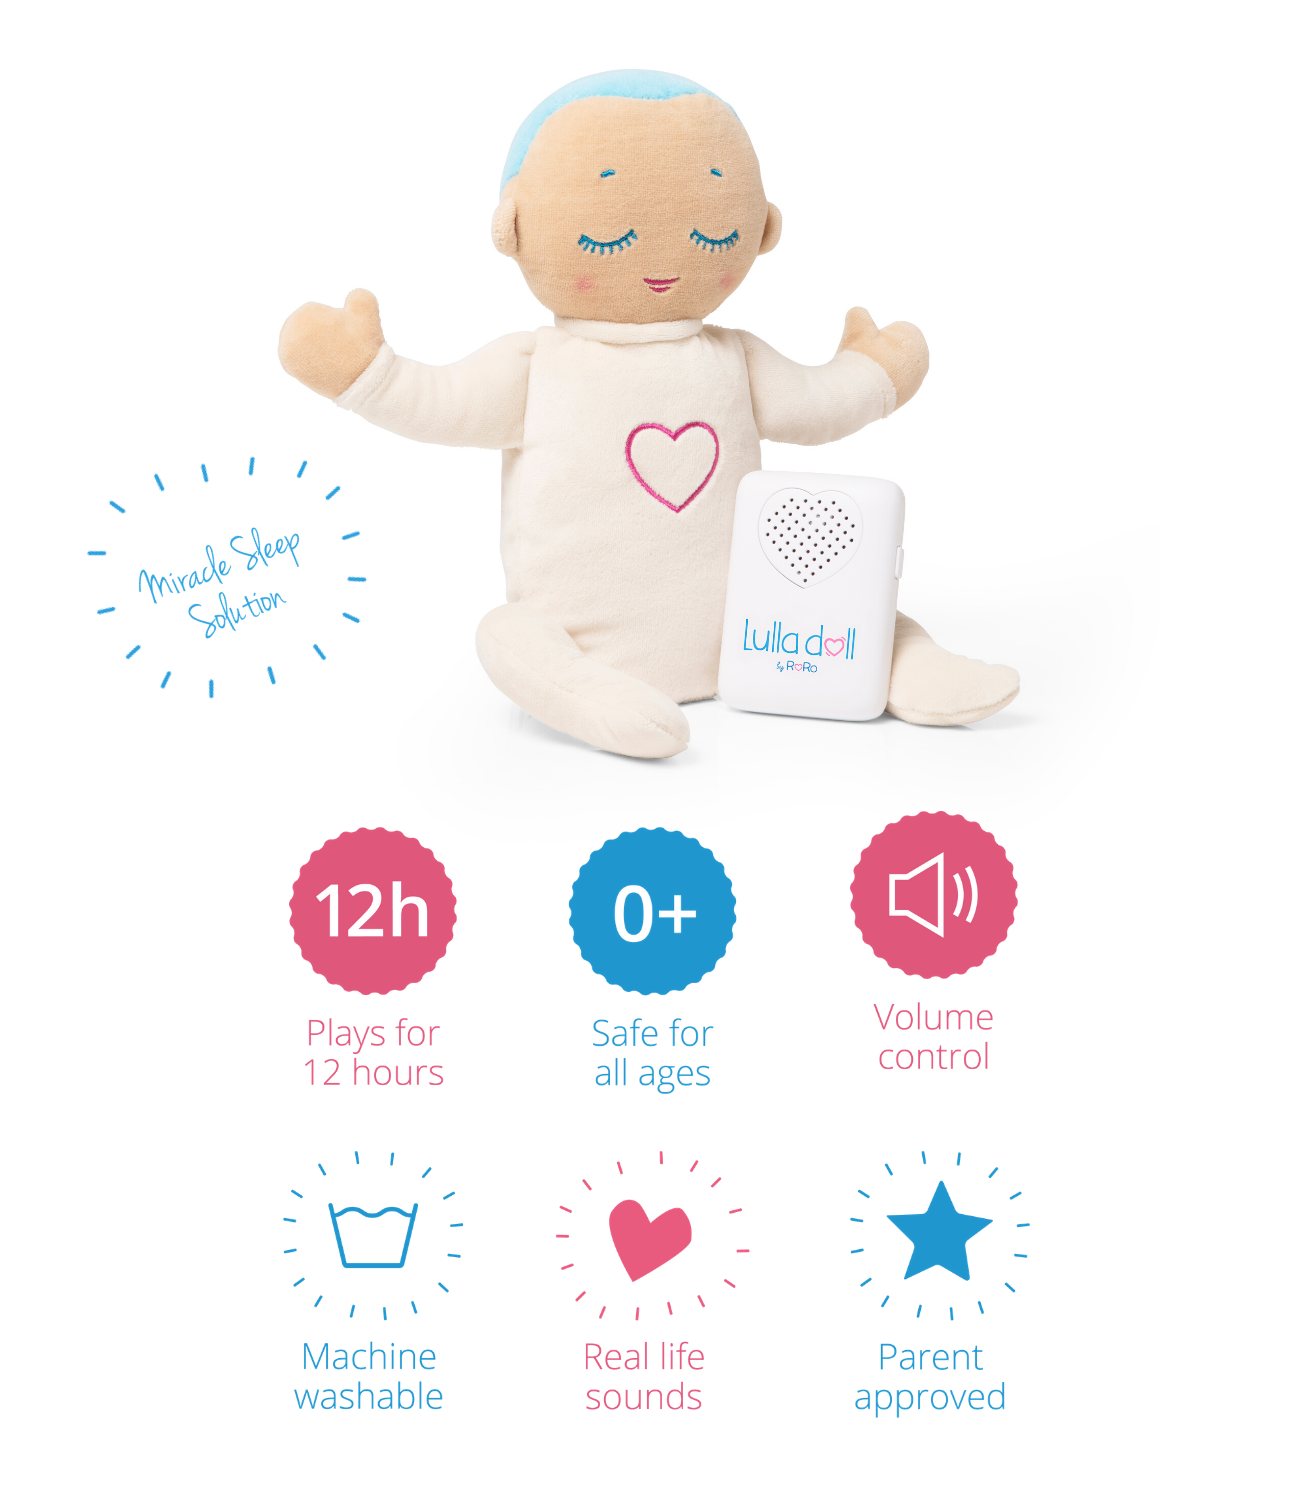 Lulla doll baby sleep solution